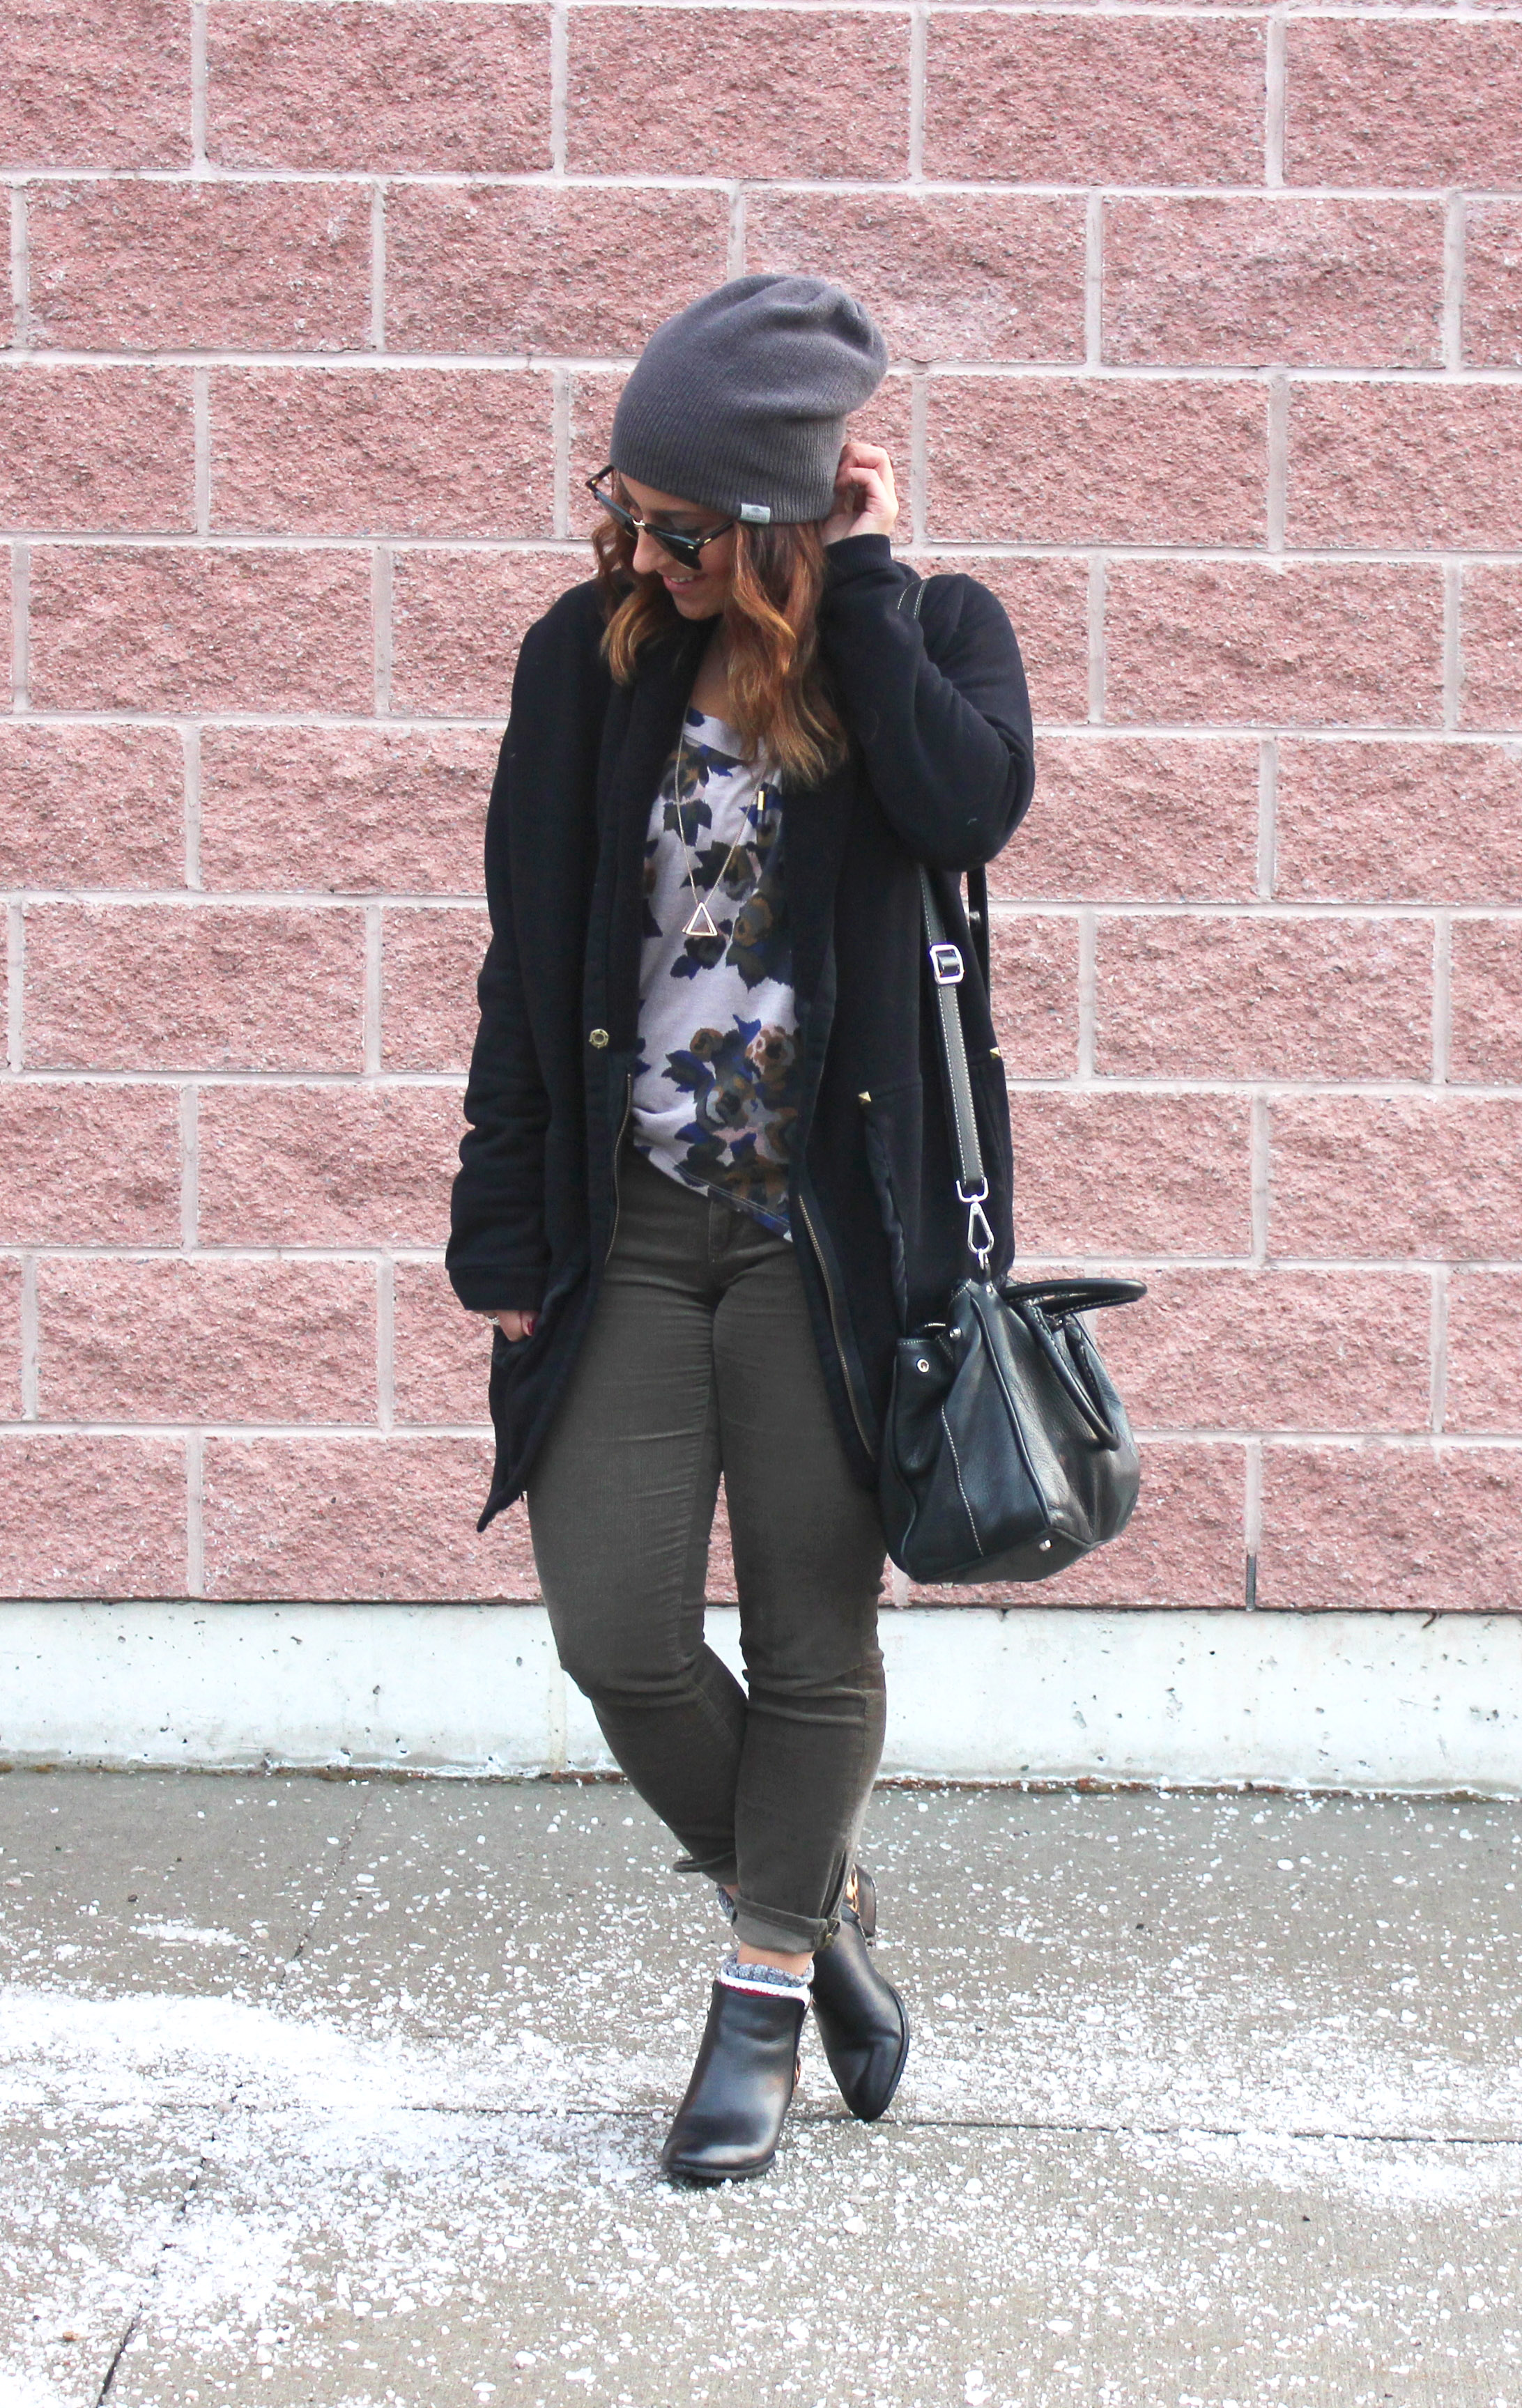 Personal Style: Oversized Cardigan, Florals, and a Beanie / somethingaboutthat.com